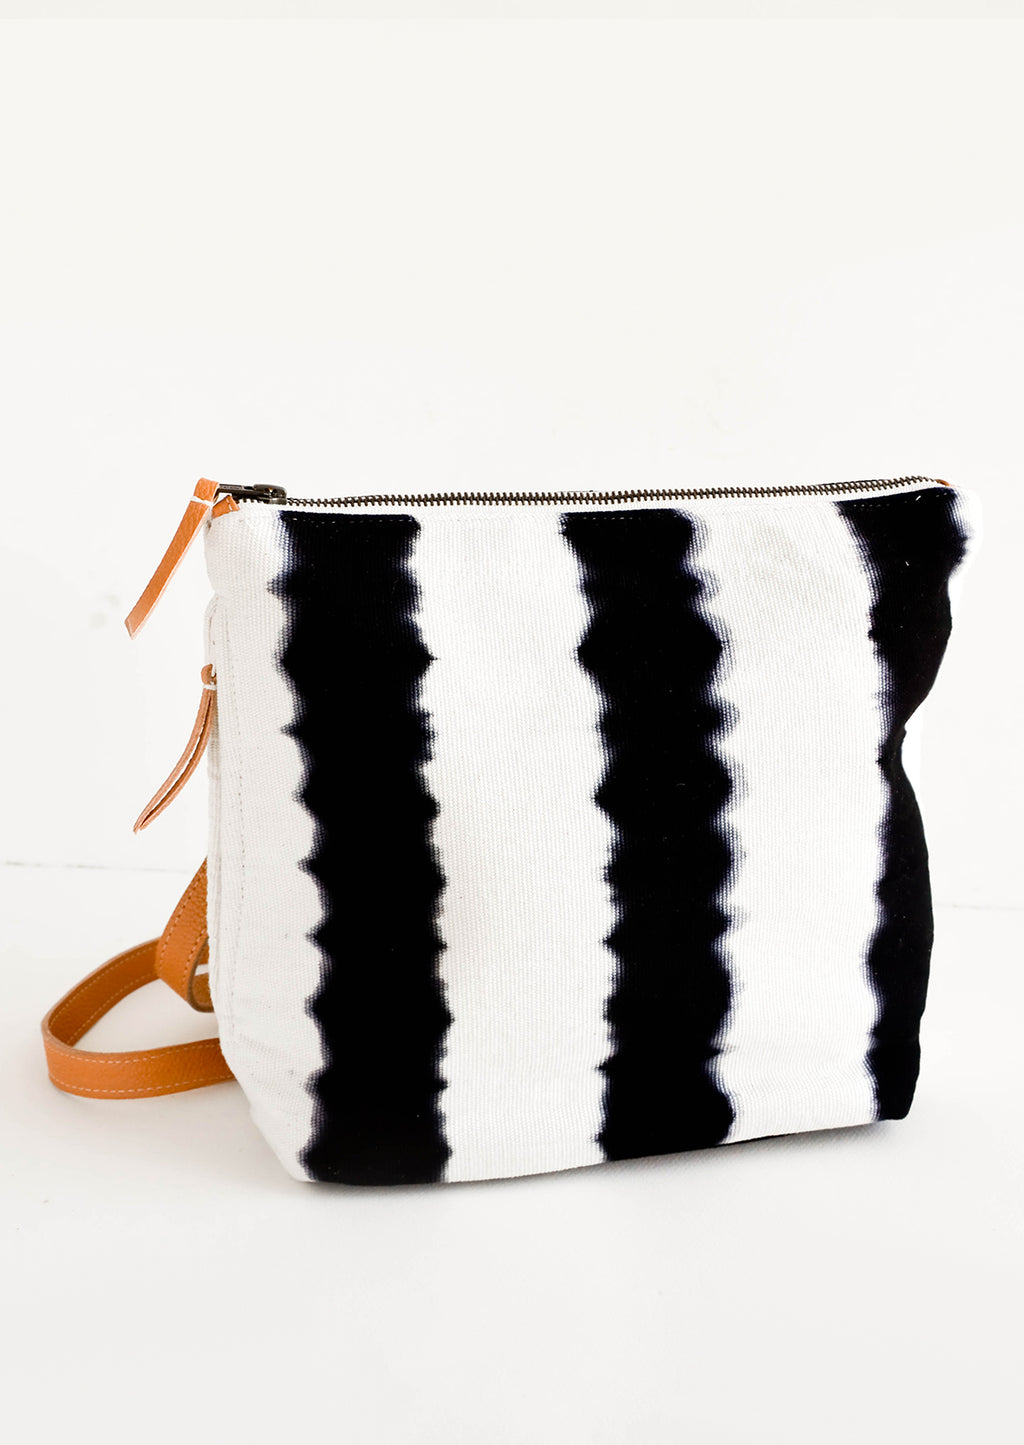 1: Fashion backpack made from cotton canvas in black & white tie dye stripes with tan leather accents